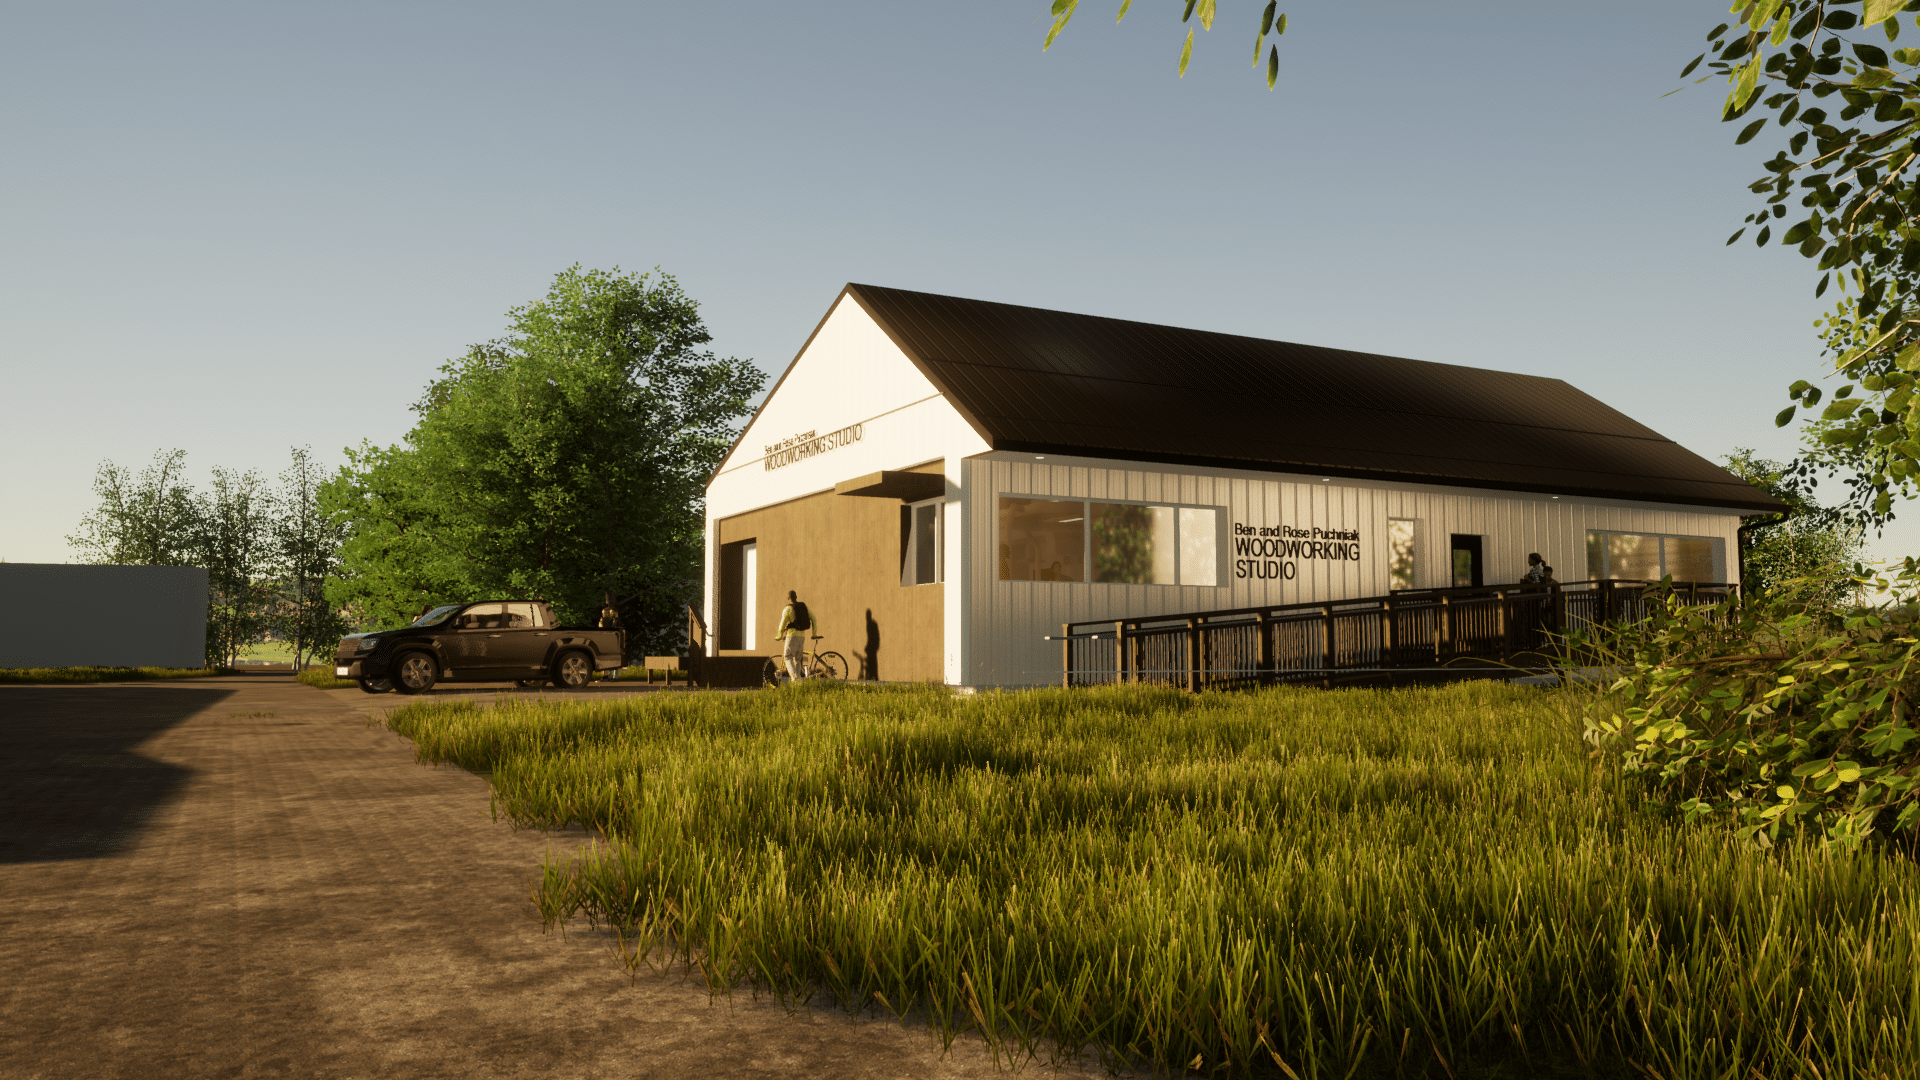 A rendering of the Ben and Rose Woodworking Studio in summer. A cream colour building is lit by the warm glow of a setting sun. Uncut grass surrounds it.